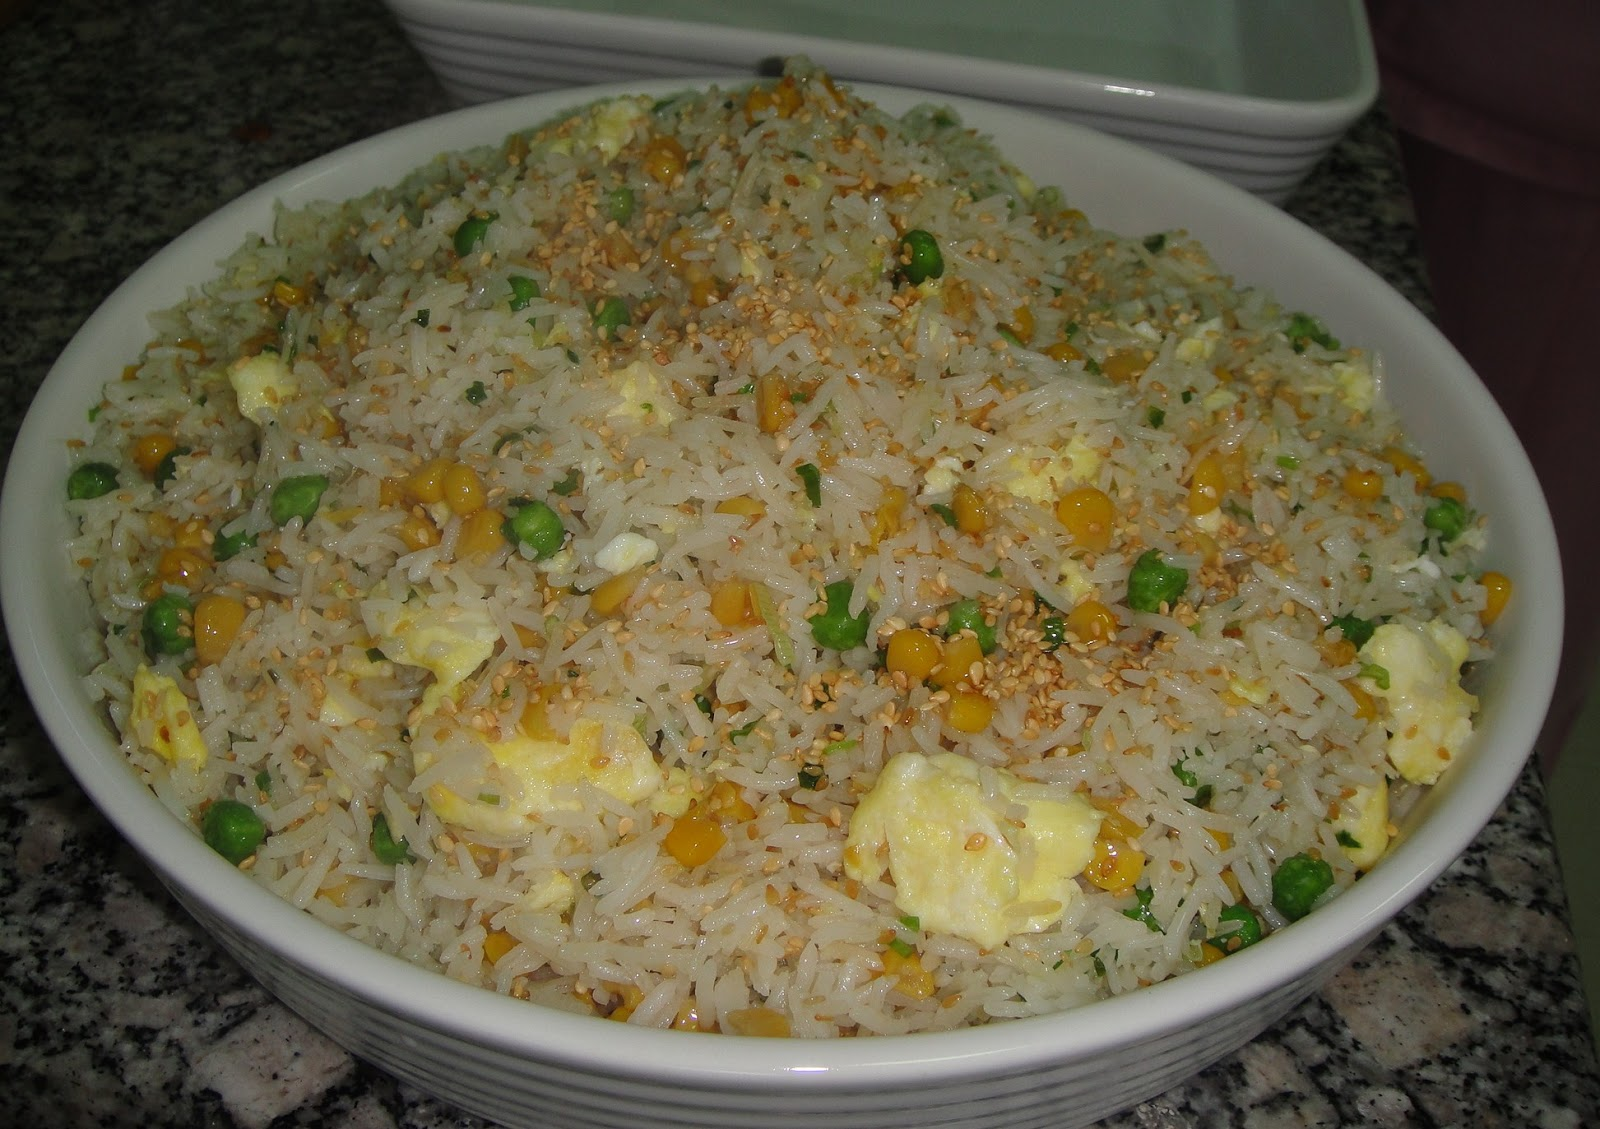 Maryam's Culinary Wonders: 227. Chinese Egg Fried Rice